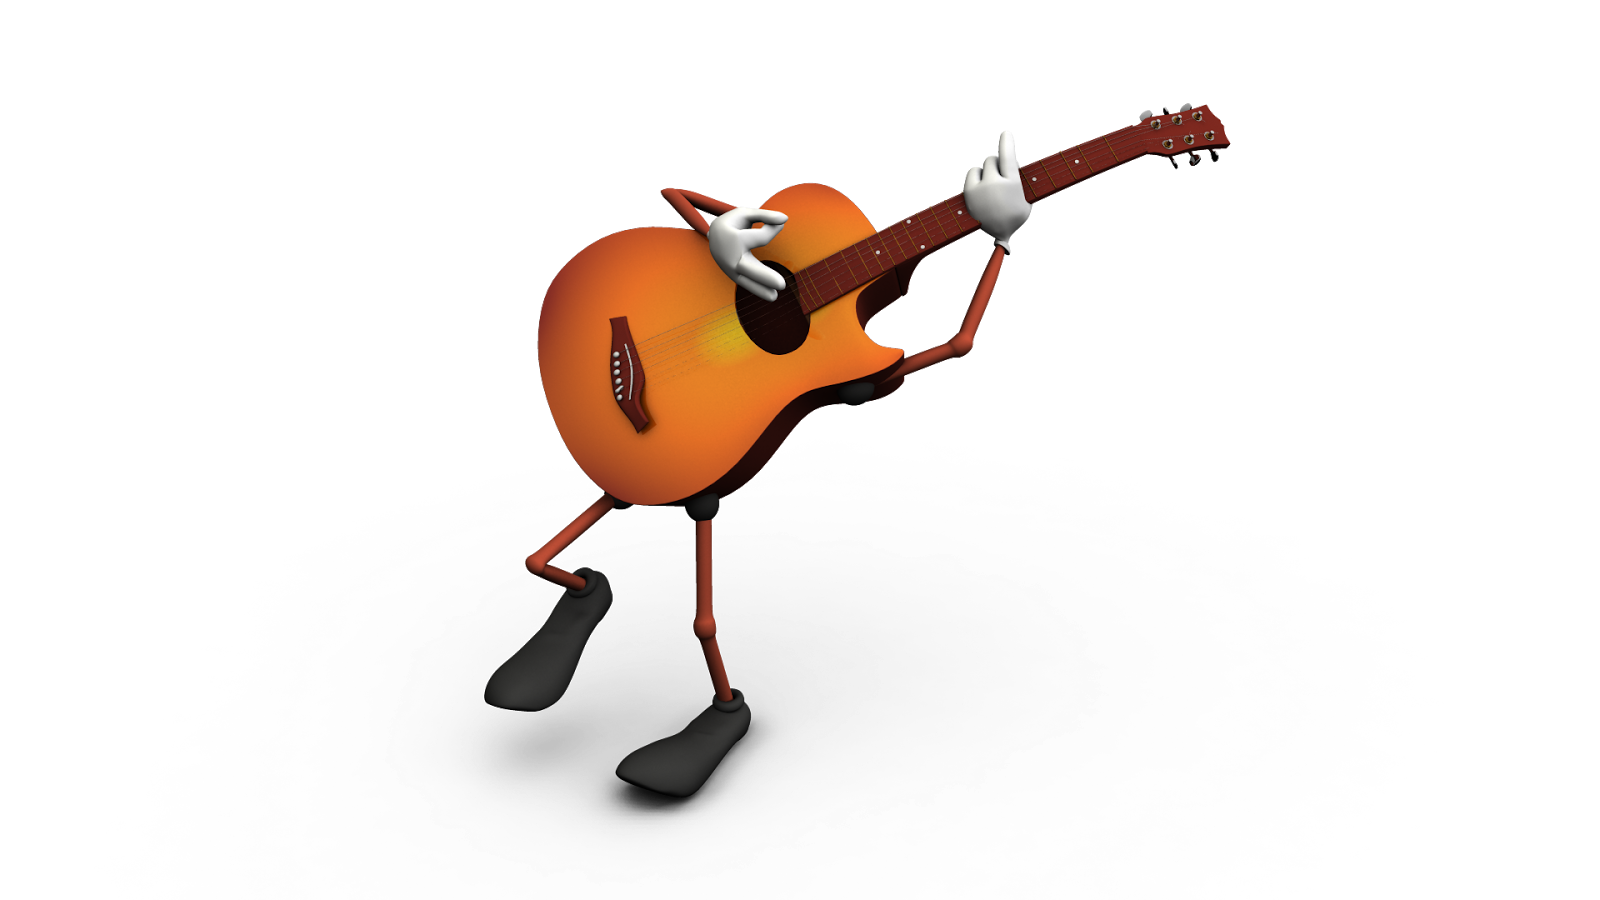 3D BUG: 3D toony musical instruments